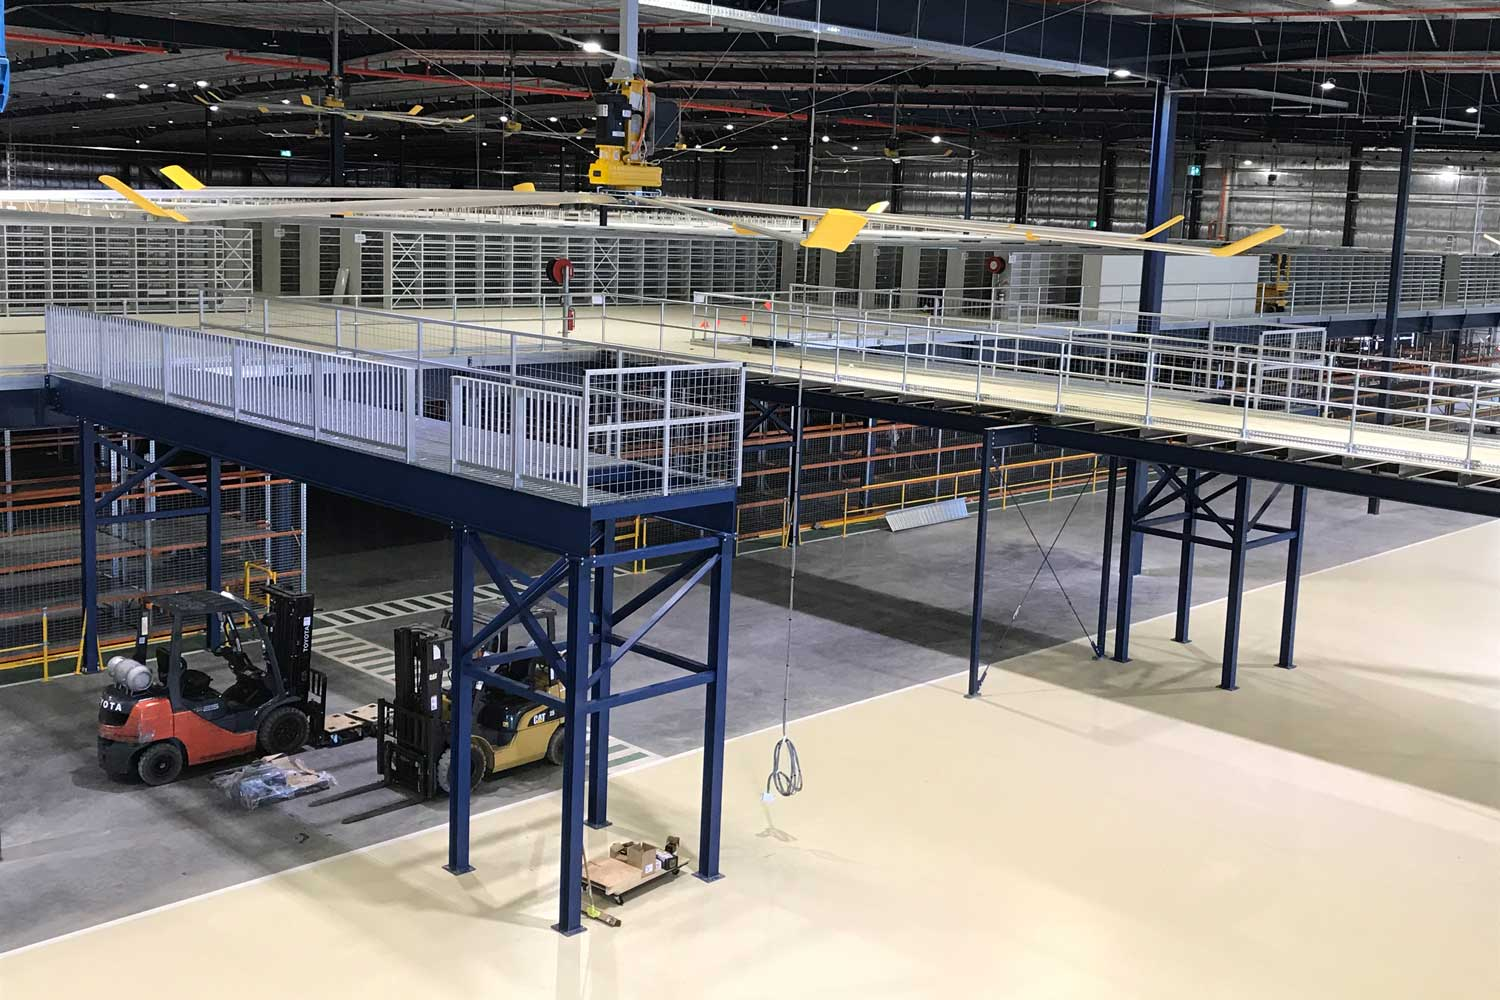 Structural Platform by Advanced Warehouse Structures with Forklift